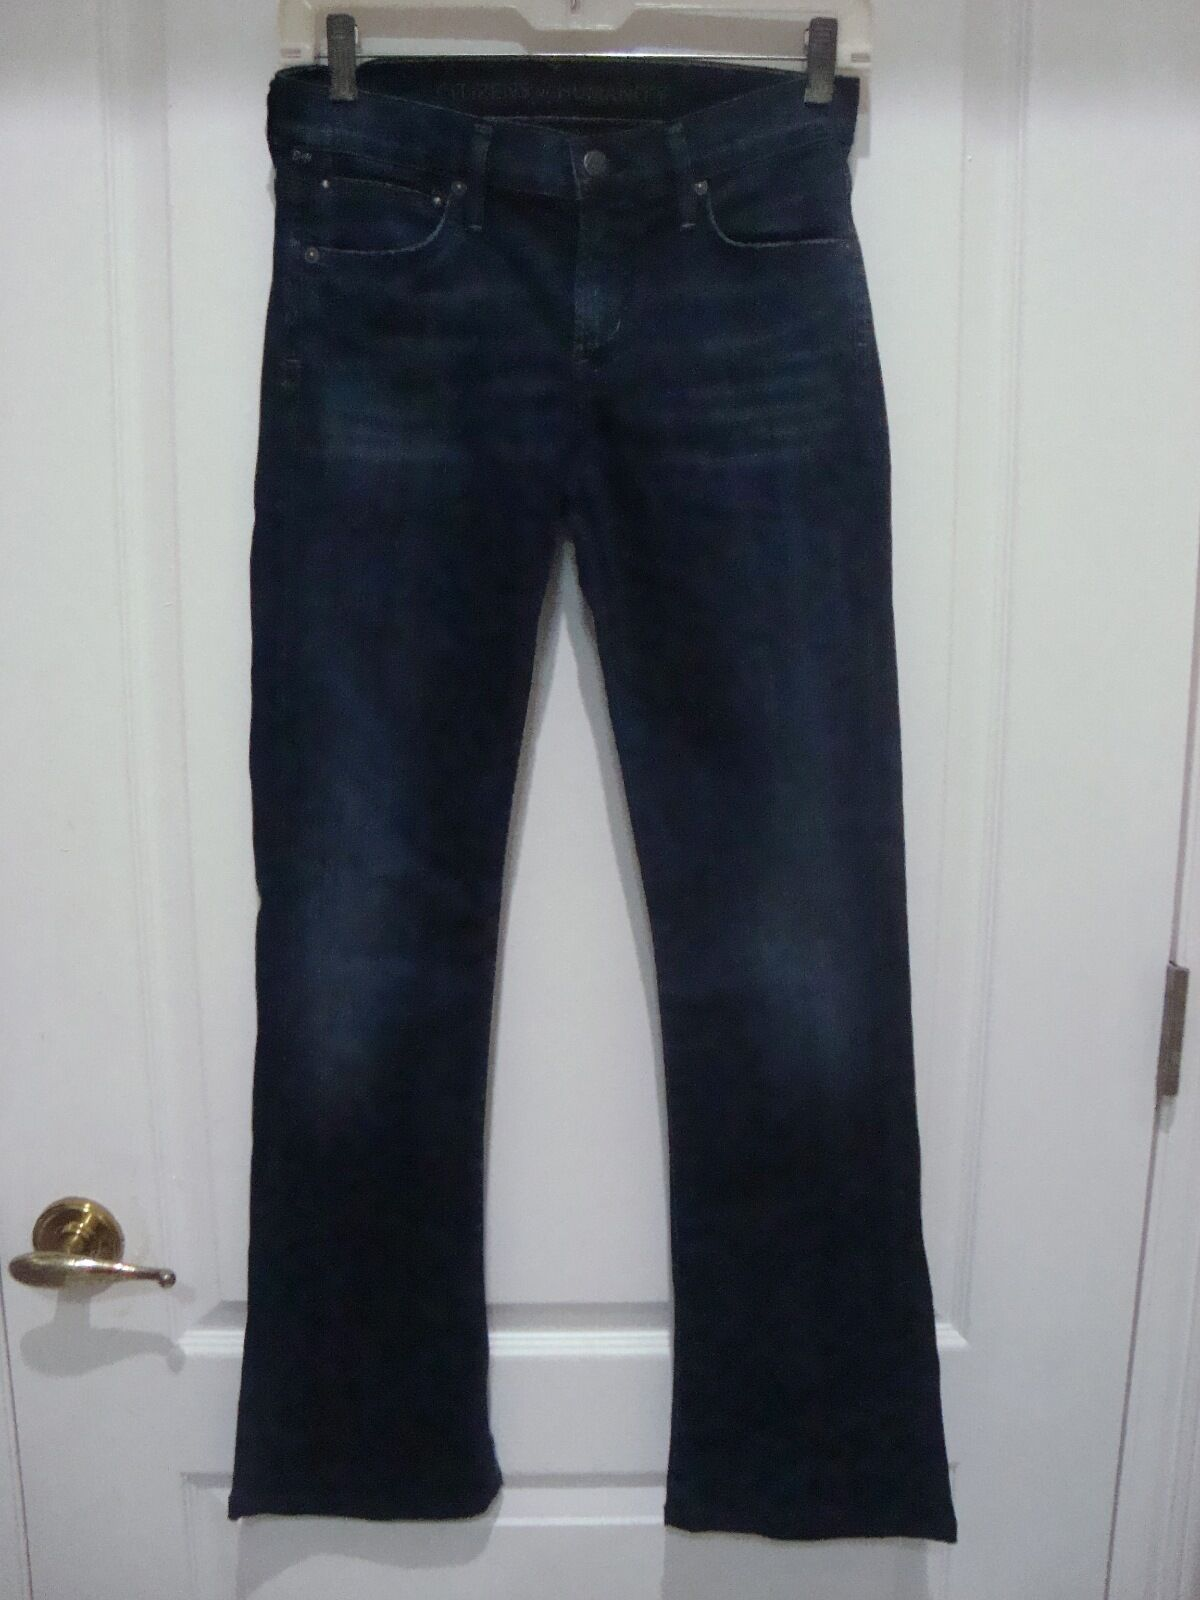 NEW CITIZENS OF HUMANITY BOOT CUT LOW RISE WOMEN'S DENIM JEANS SIZE 25